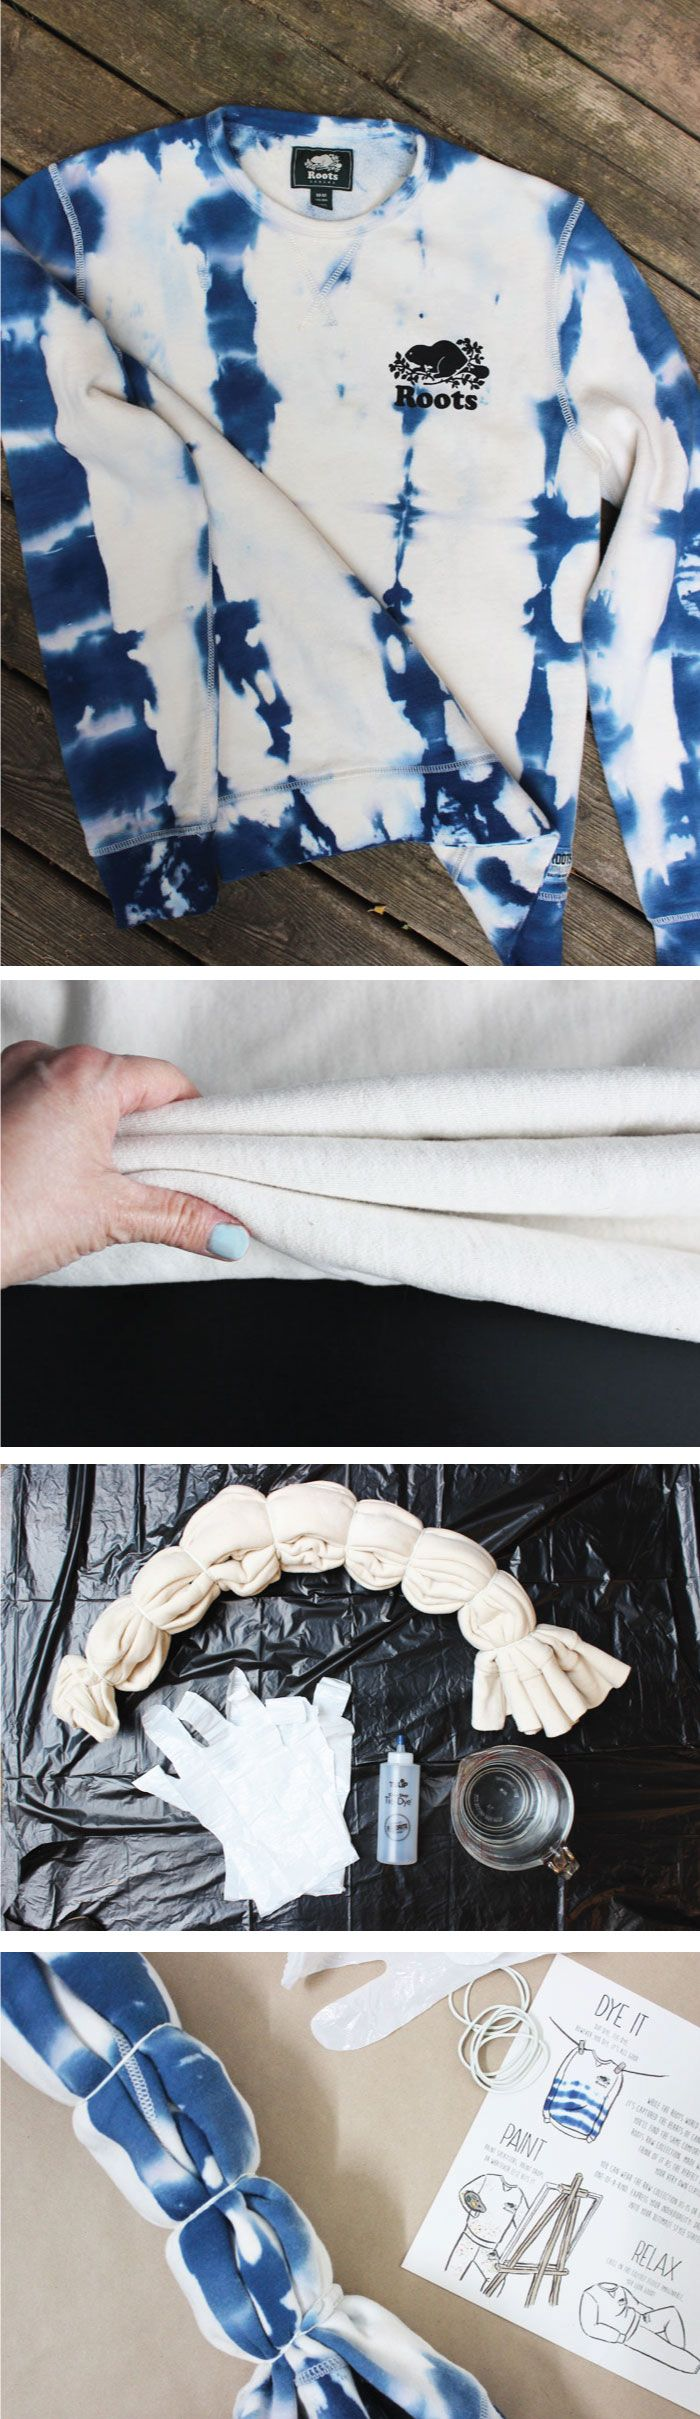 diy shibori cooles sweatshirt batiken textilien f rben shibori und diy kleidung. Black Bedroom Furniture Sets. Home Design Ideas